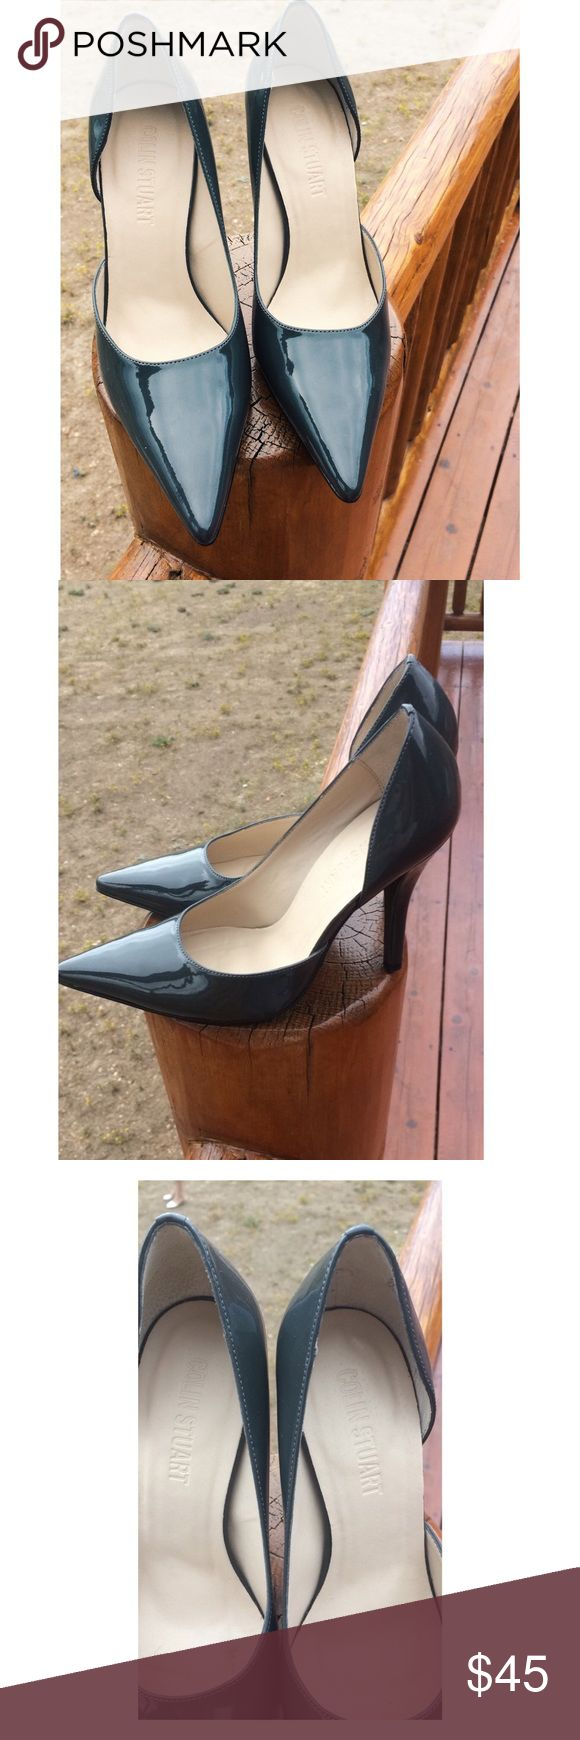 Colin Stuart dark gray work pumps Colin Stuart dark gray work pumps. Size 7.5. Great condition!! Colin Stuart Shoes Heels